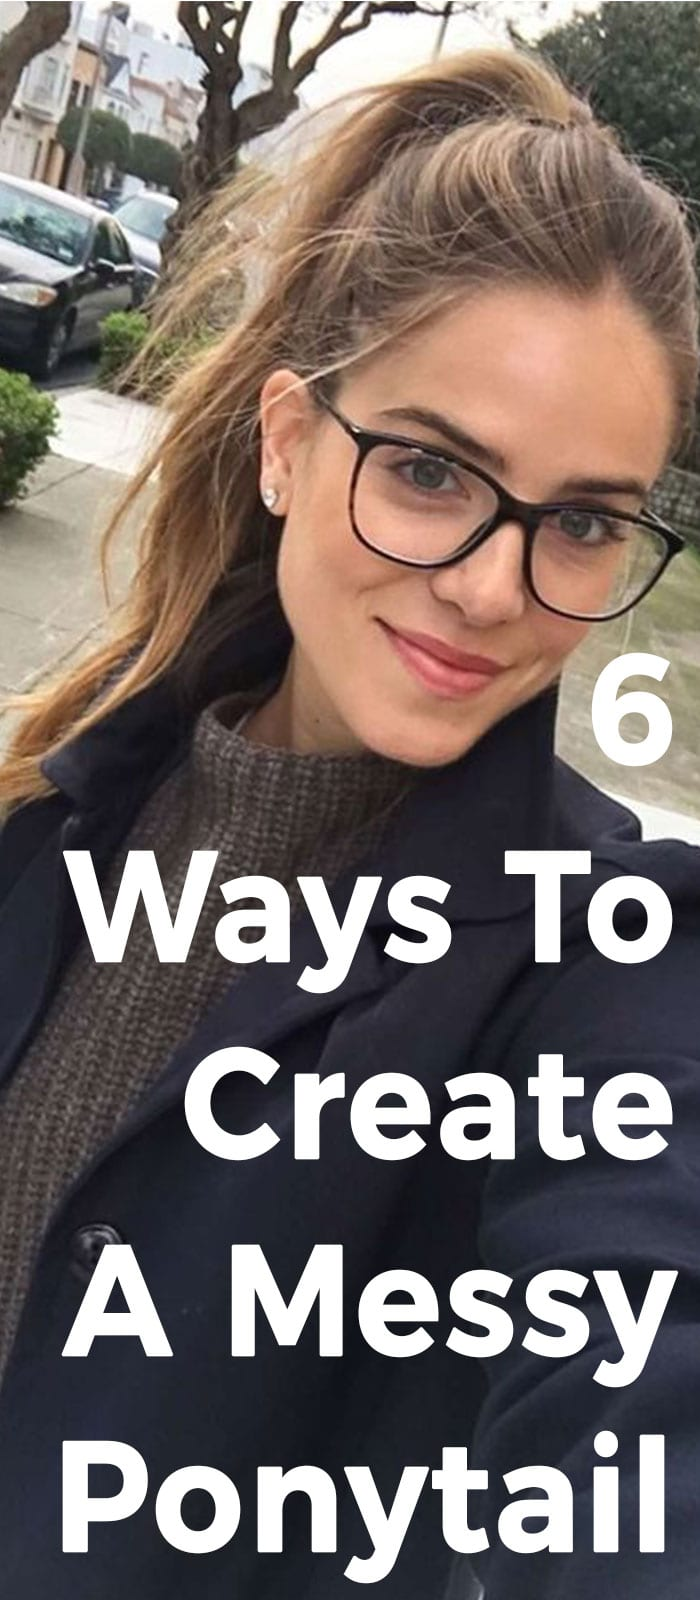 6 Ways To Create A Messy Ponytail